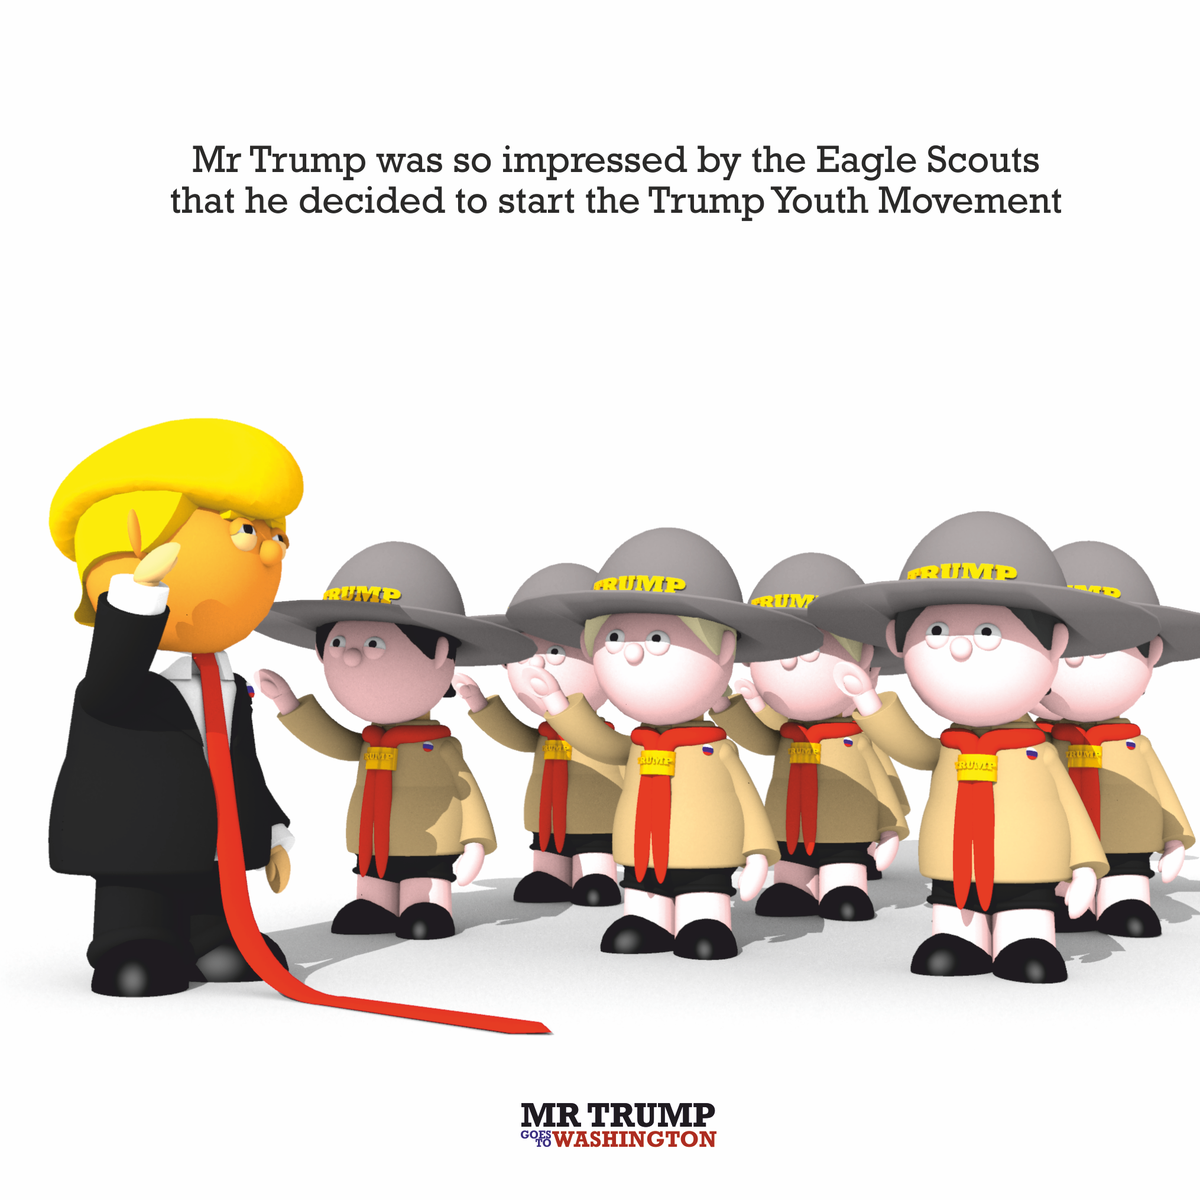 Mr Trump was so impressed by the Eagle Scouts that he decided to start the Trump Youth Movement  #Trump #trumpyouth